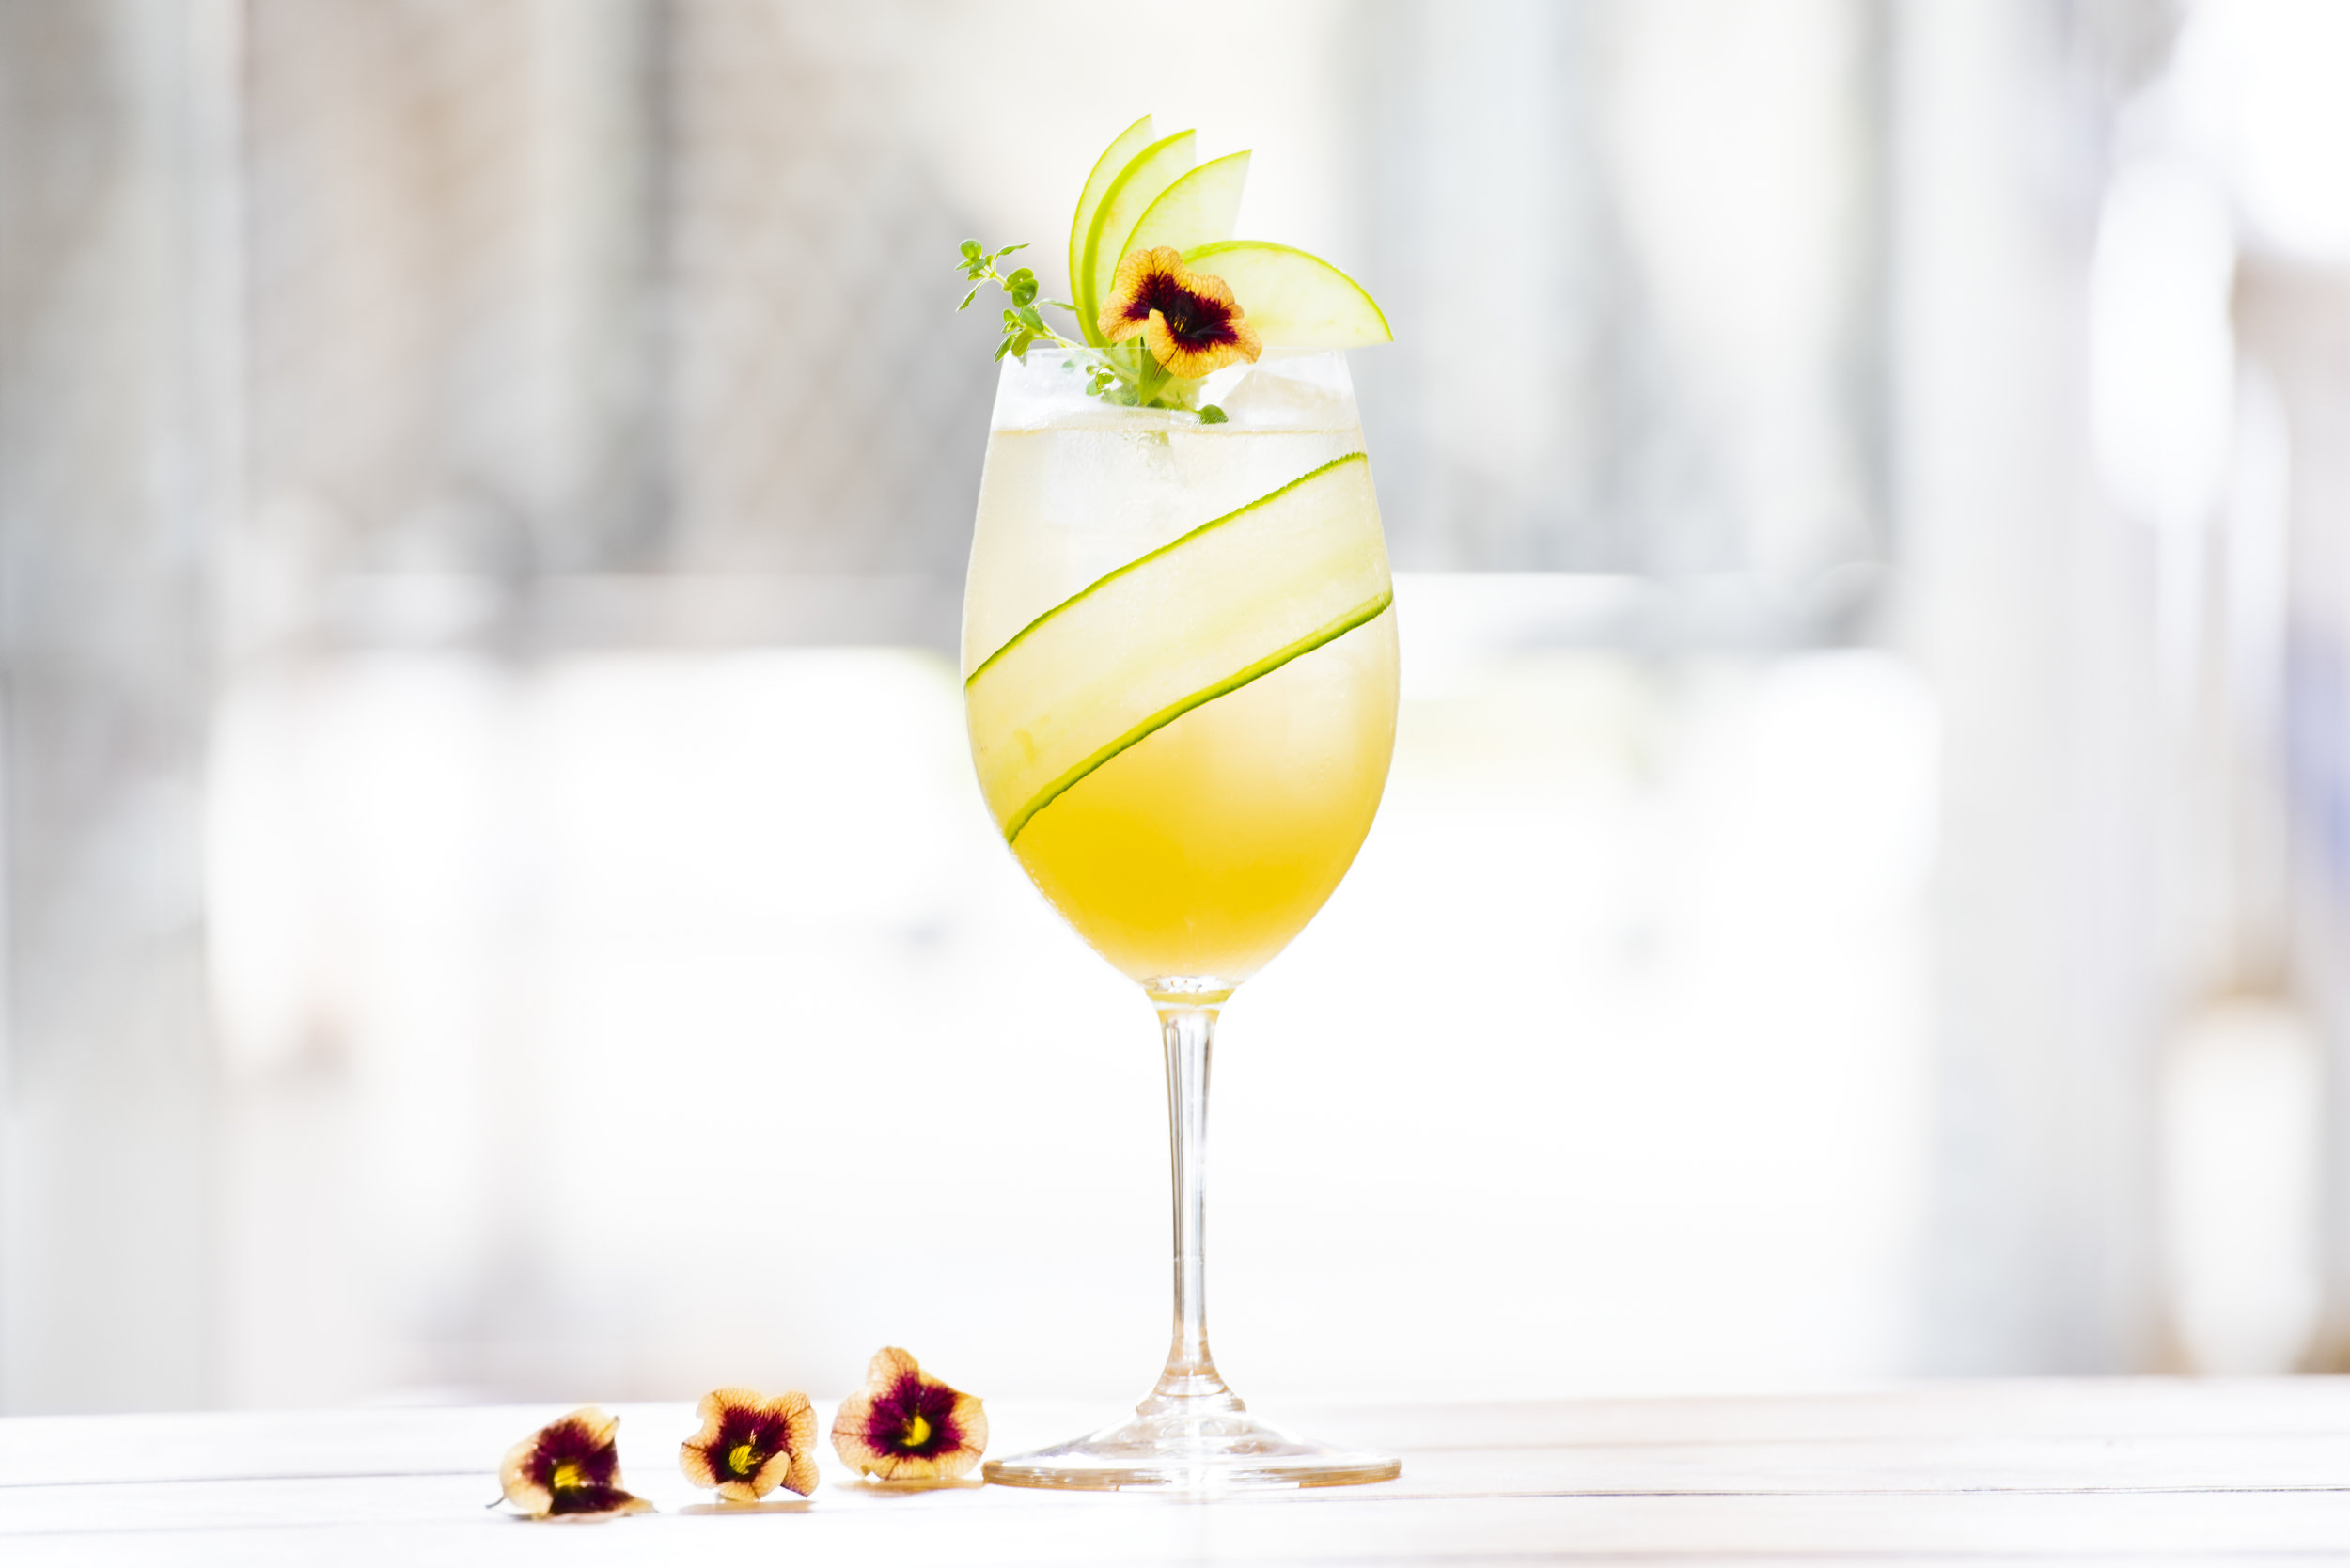 Salcombe Gin Appabella cocktail